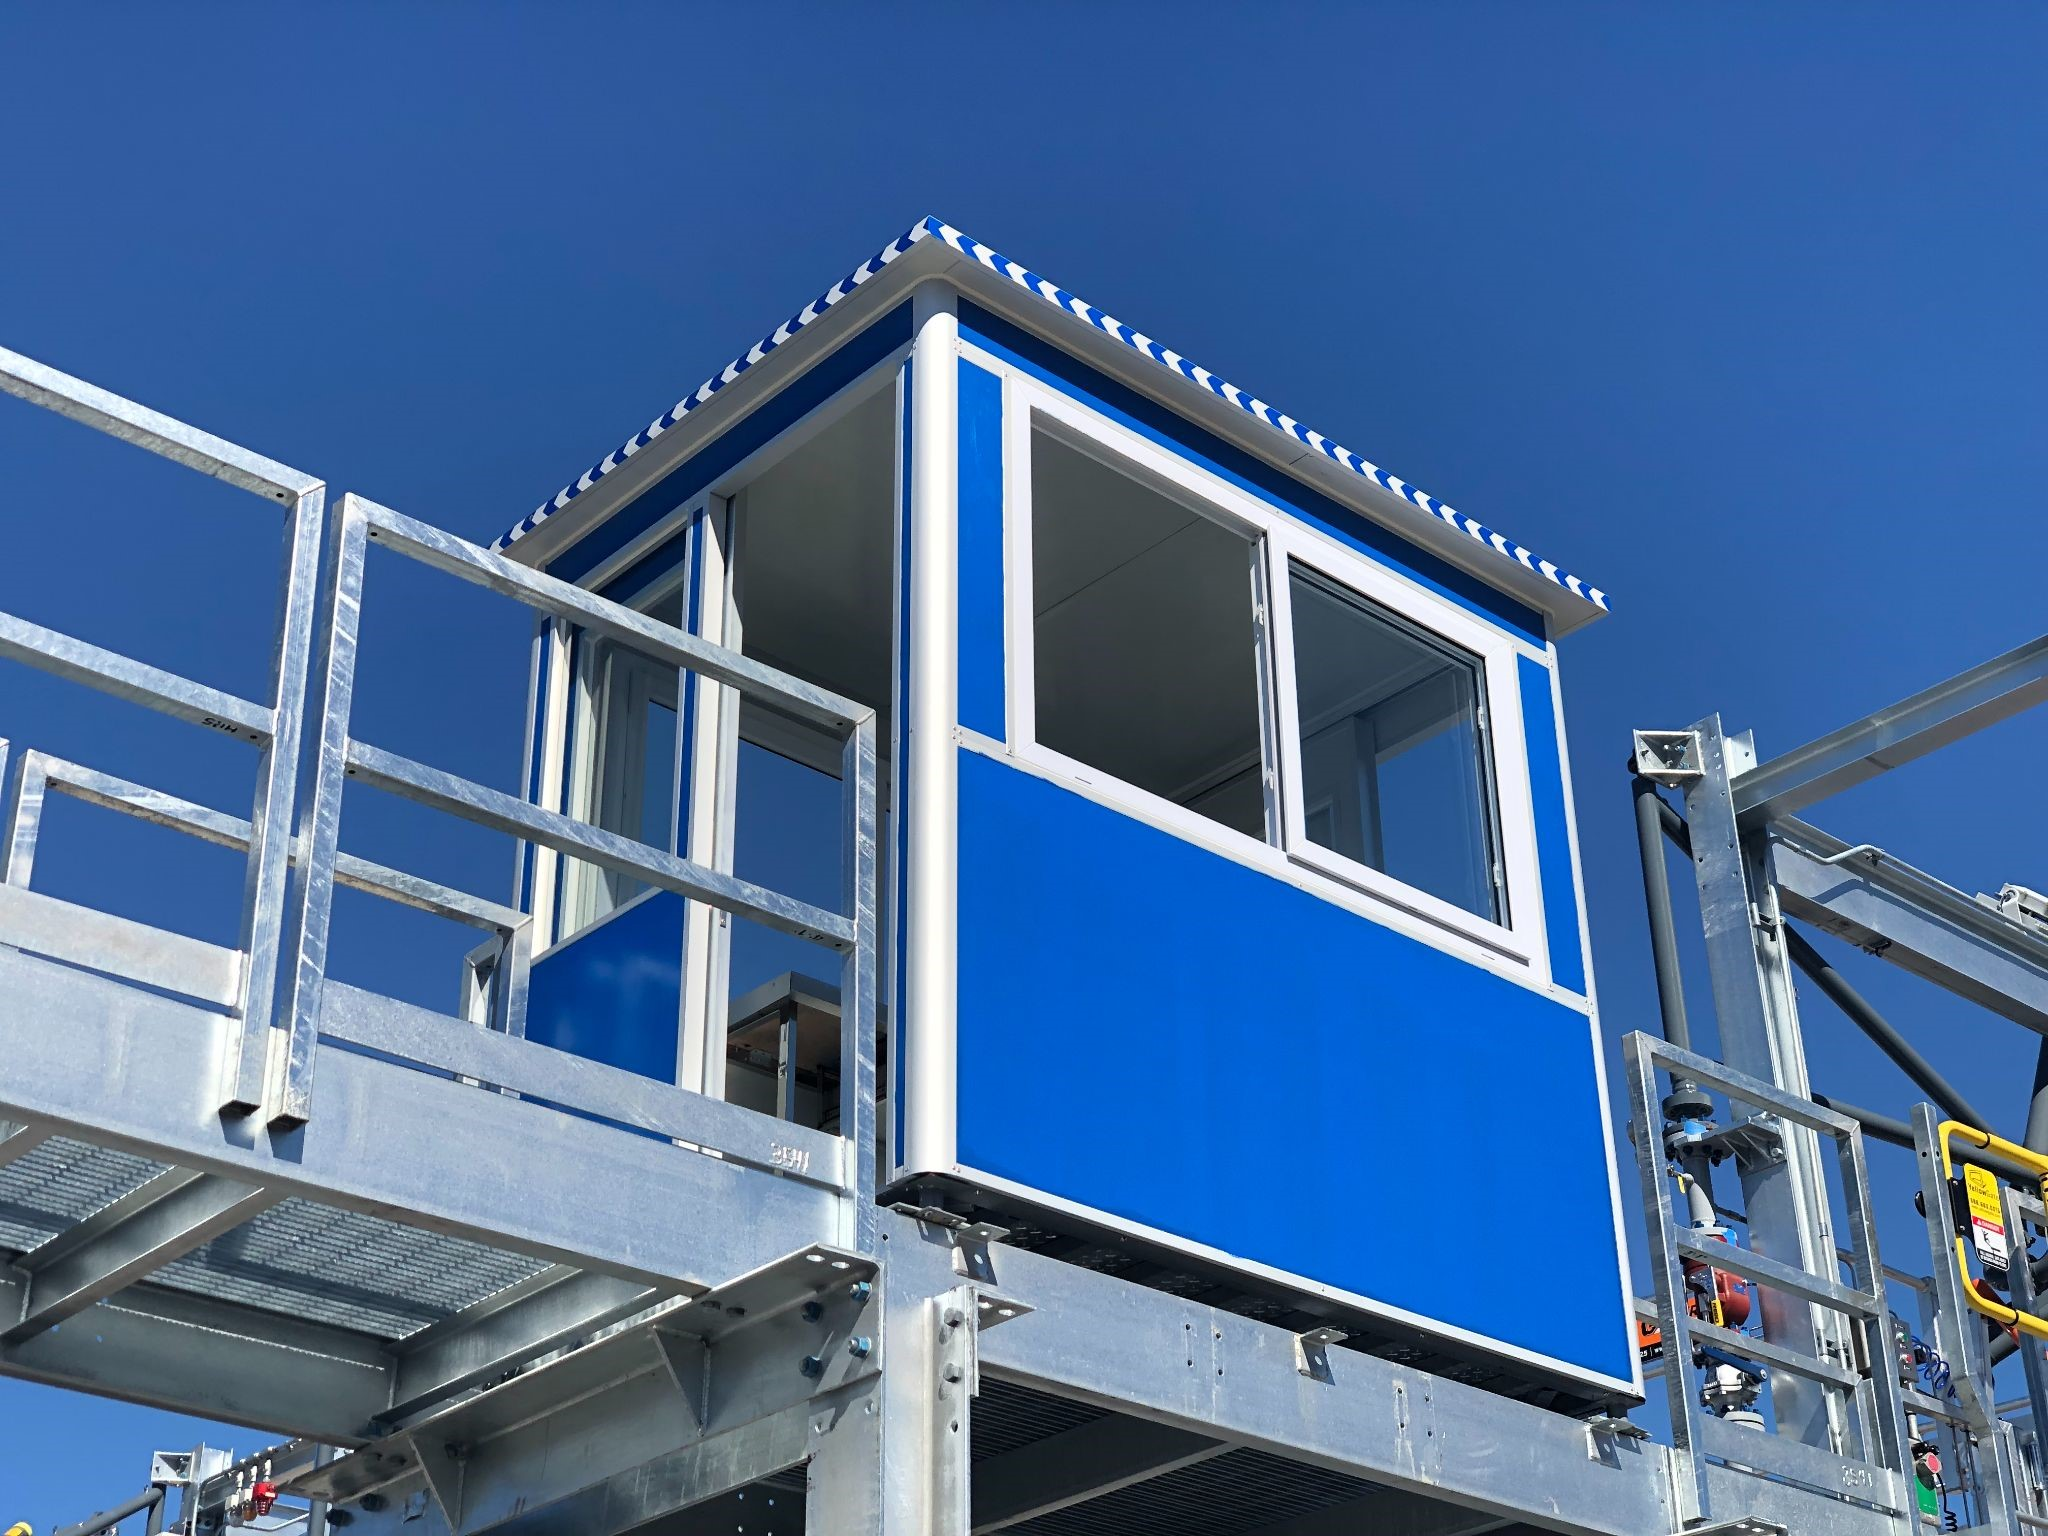 Watch tower for security